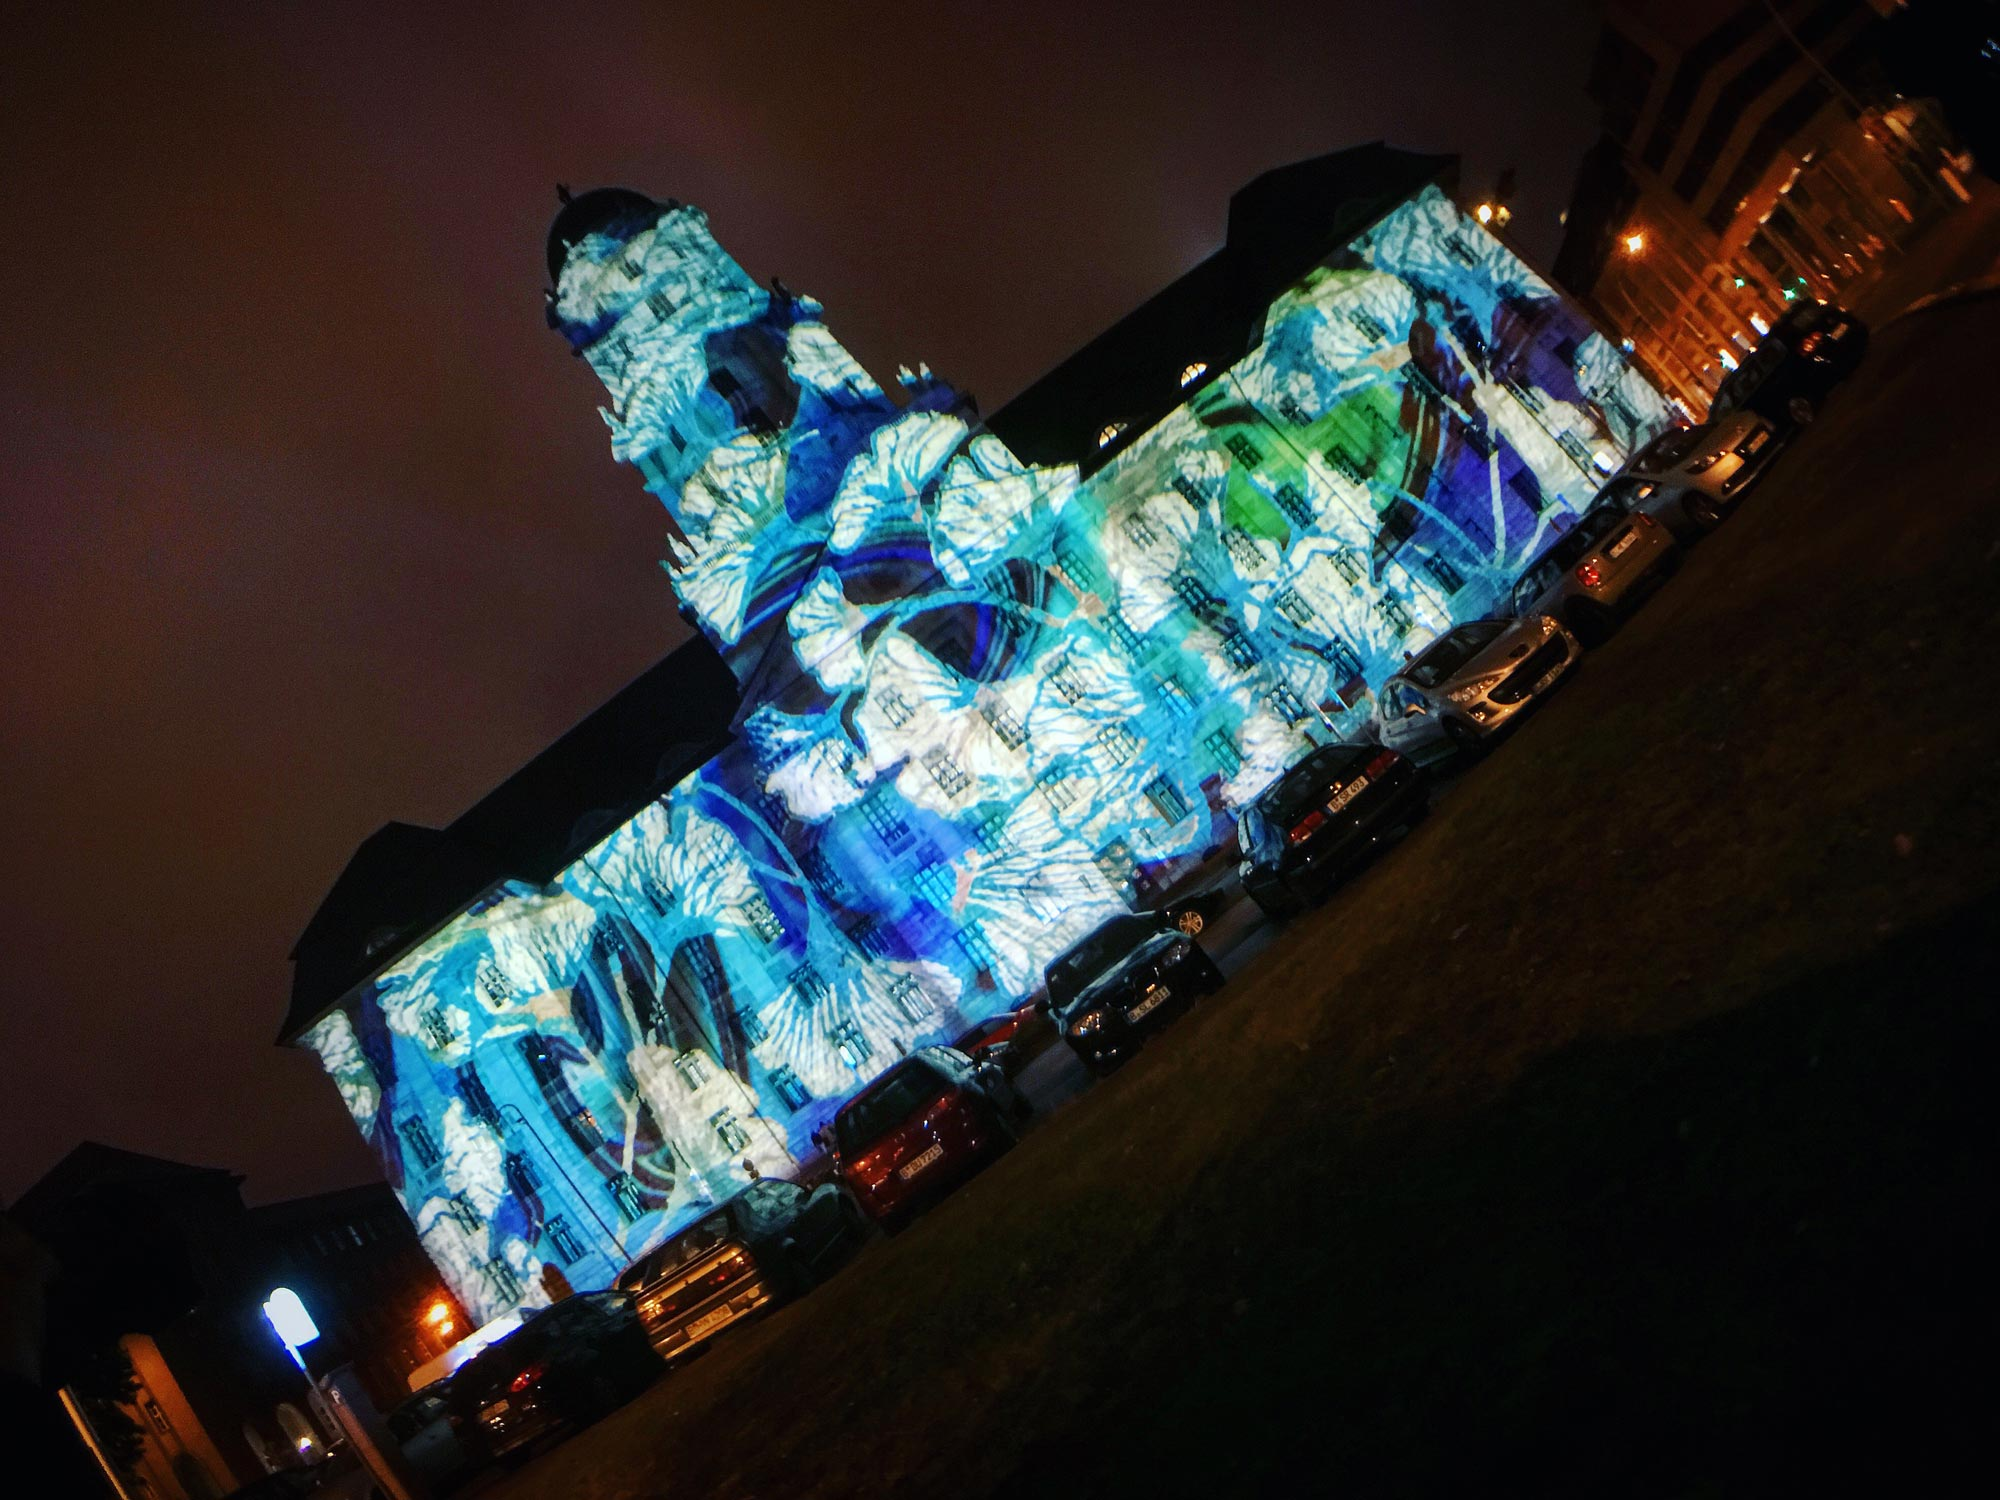 Festival of Lights 2016: Altes Stadthaus